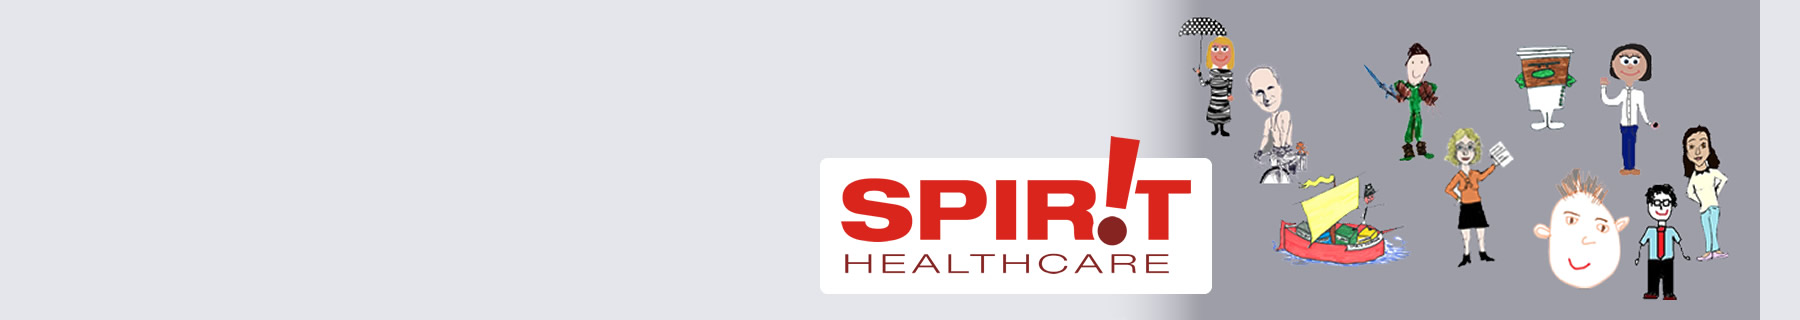 Spirit Healthcare use Surgery Connect to improve their patients phone access and appointment booking, supported by a seamless backup should the phone service be interrupted